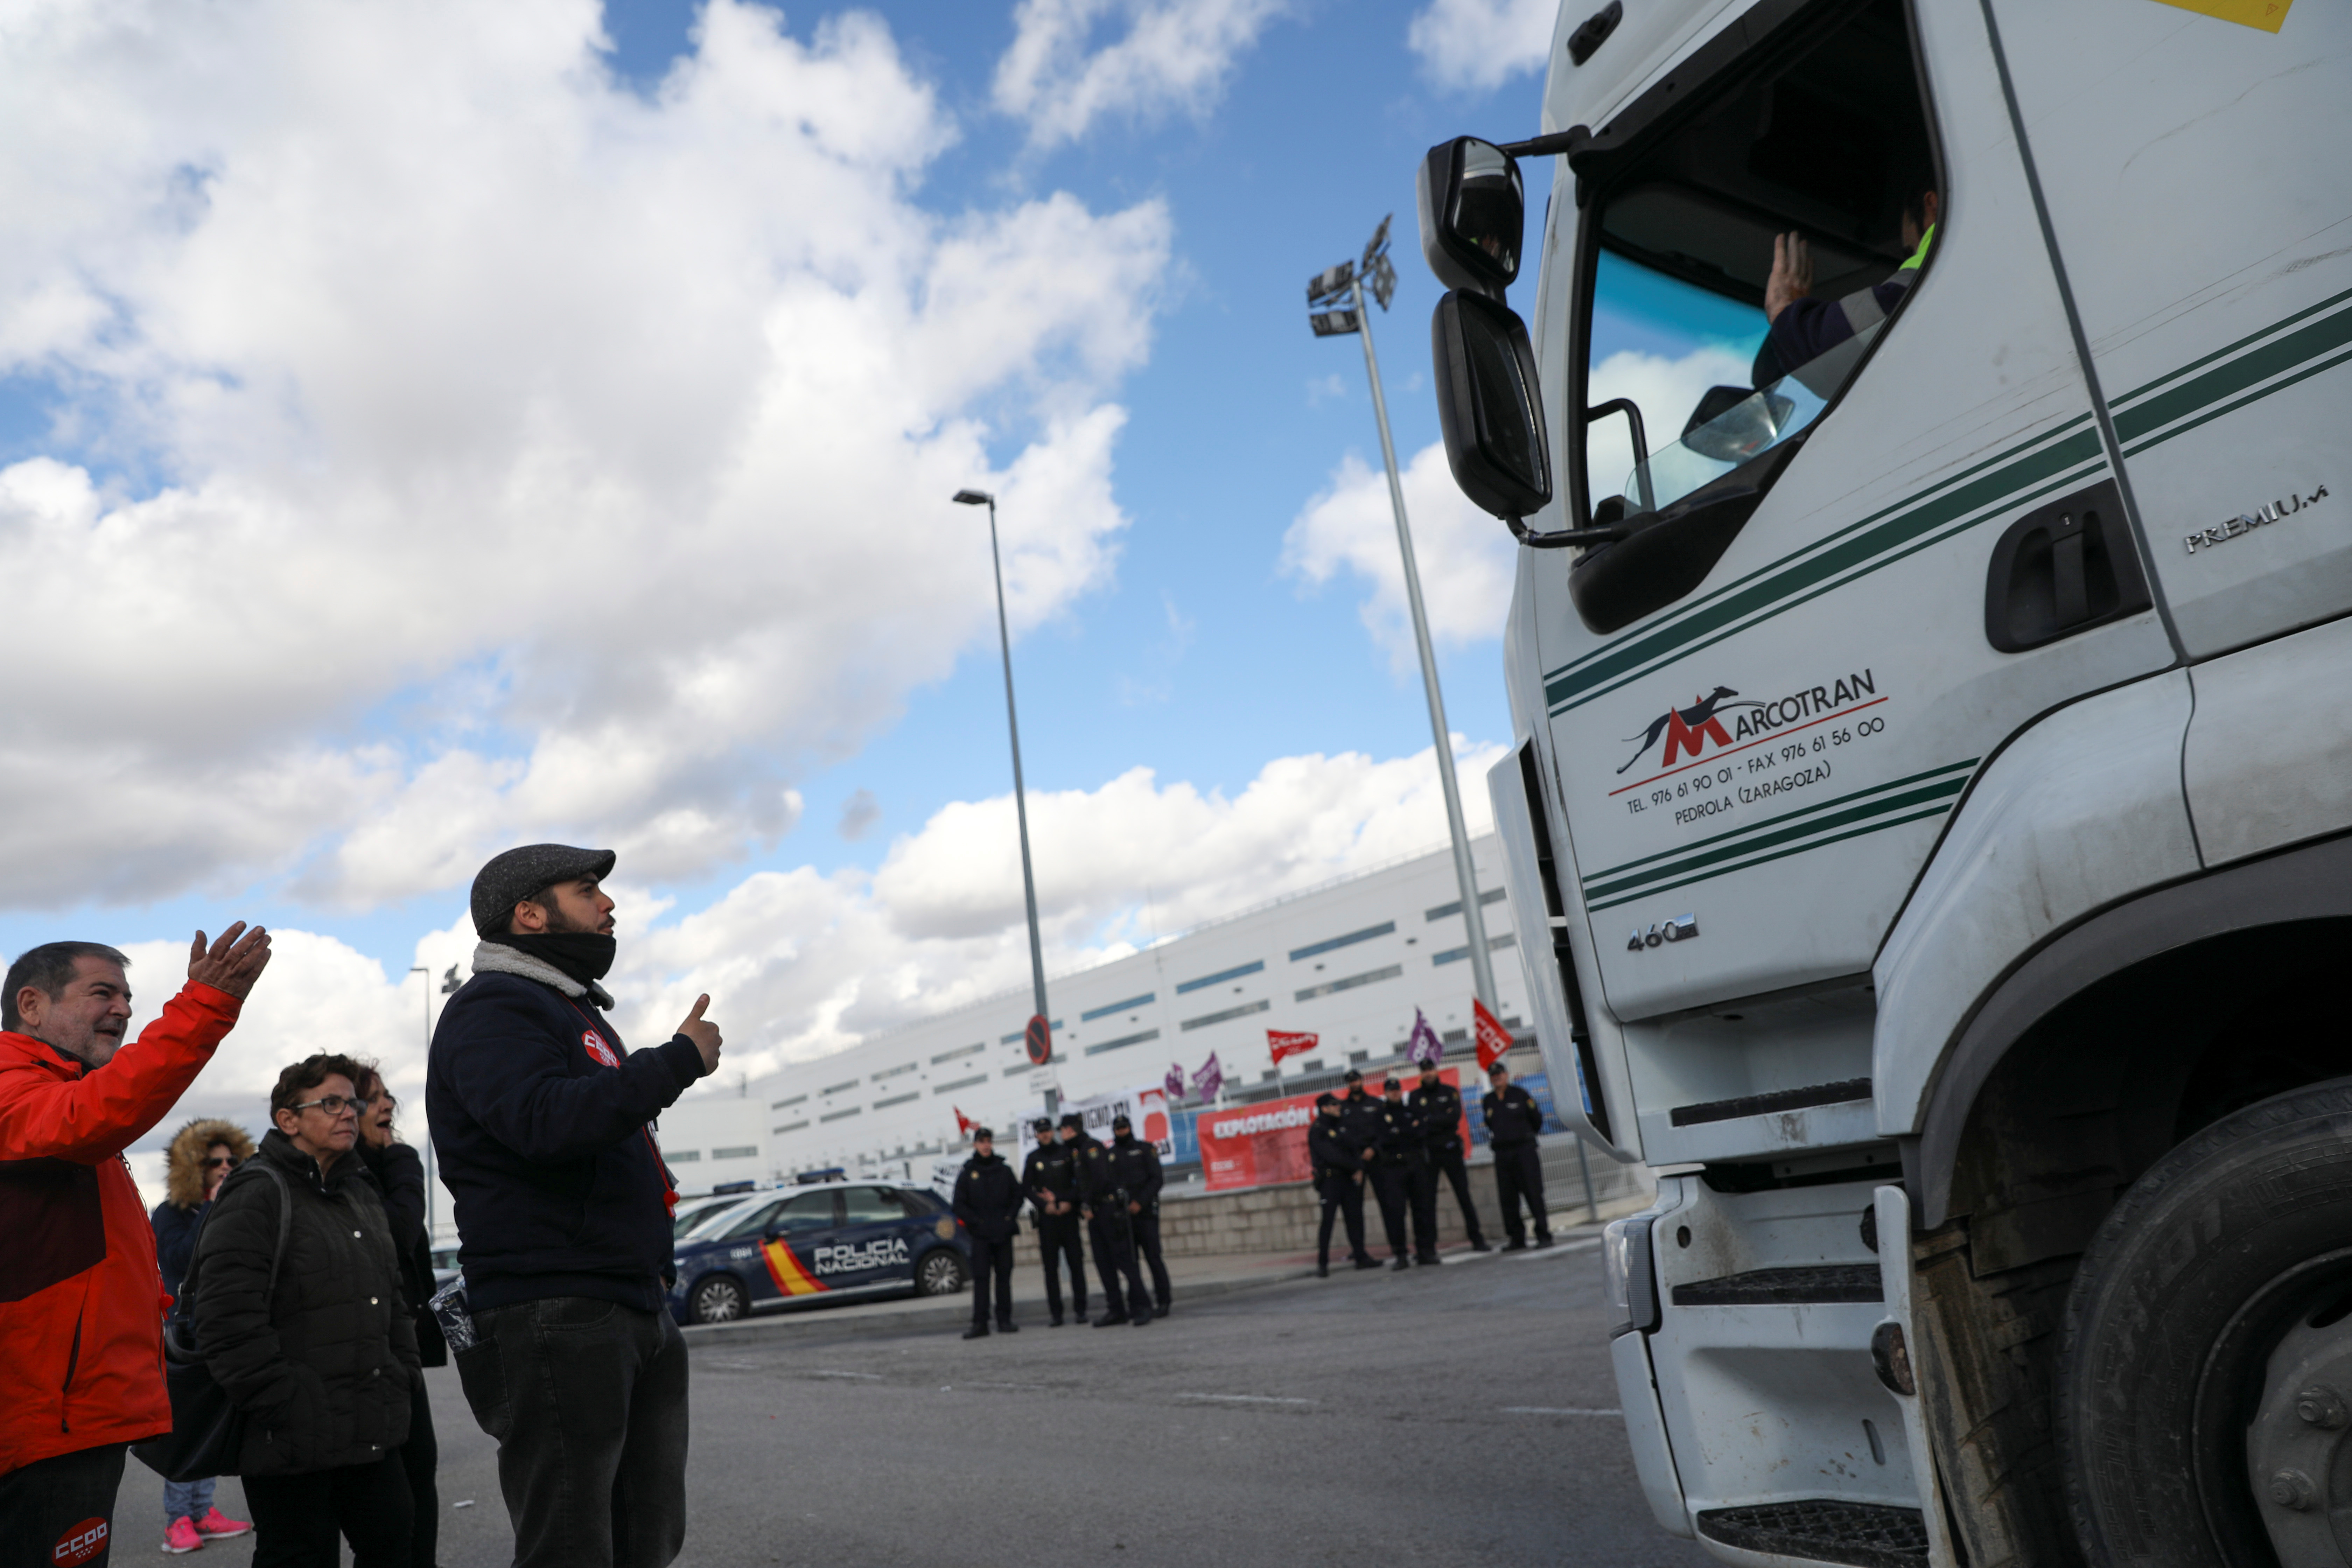 Pickets gesture to a truck driver outside an Amazon fulfillment centre during a strike in San Fernando de Henares near Madrid, Spain, November 23, 2018. REUTERS/Susana Vera